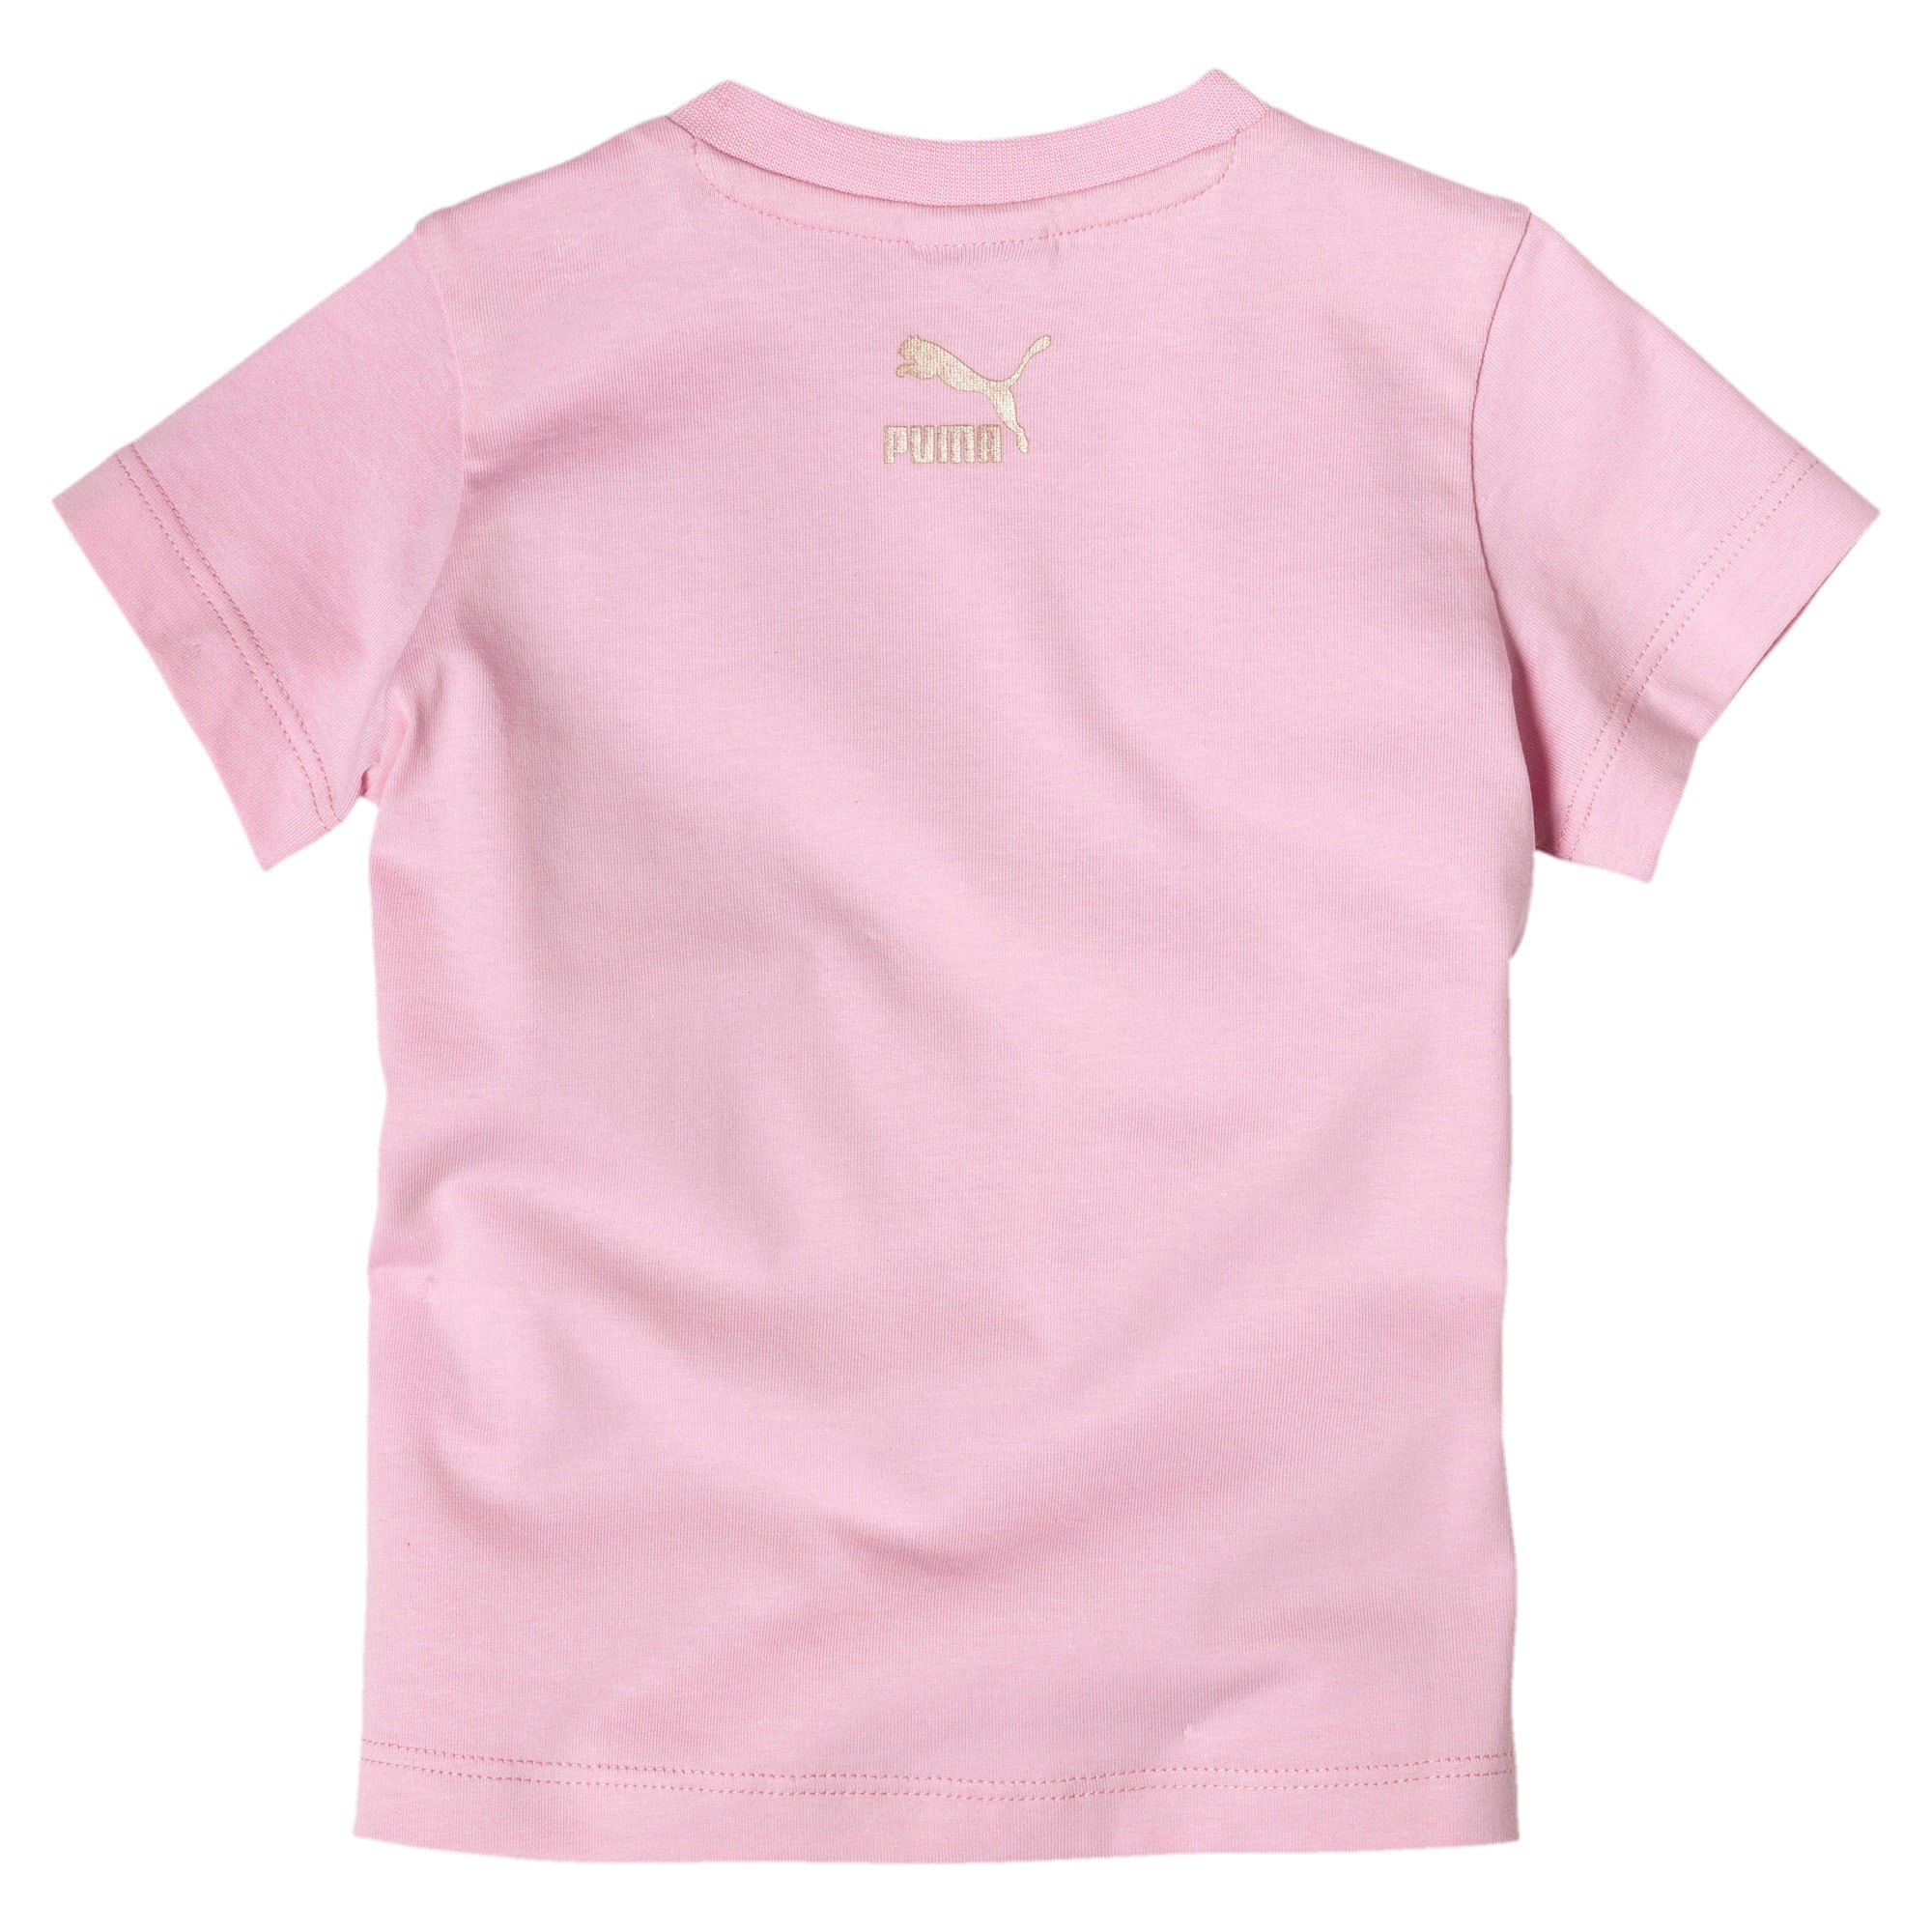 Thumbnail 2 of Easter Babies' Tee, Pale Pink, medium